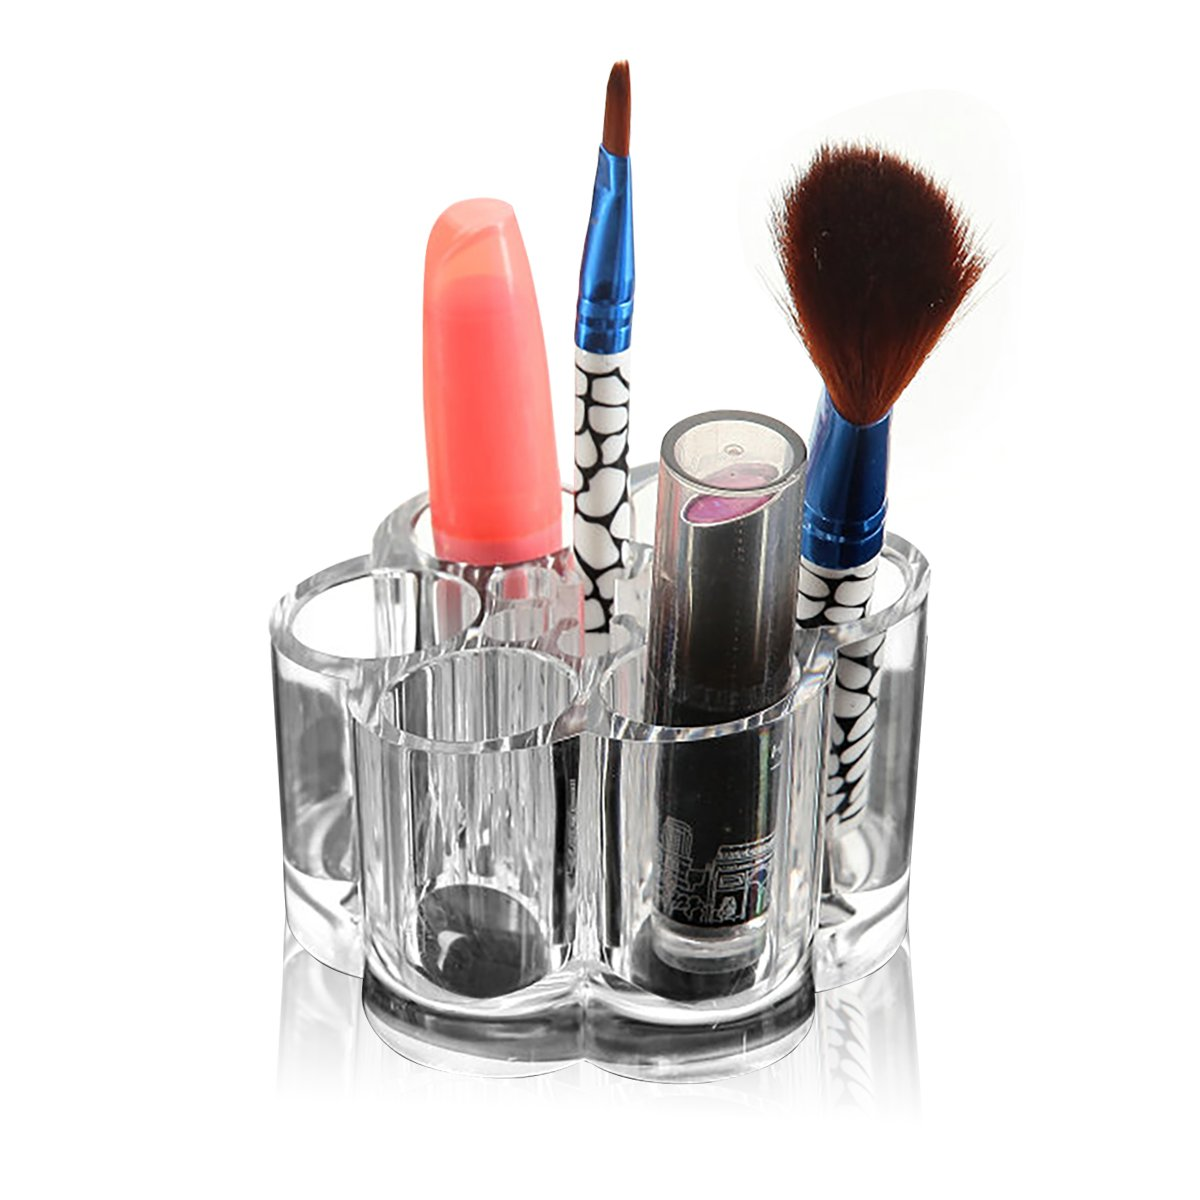 Acrylic Makeup Organizer with 12 Slots in 2 Sizes Clear Round Cosmetic And Lipstick Organizer